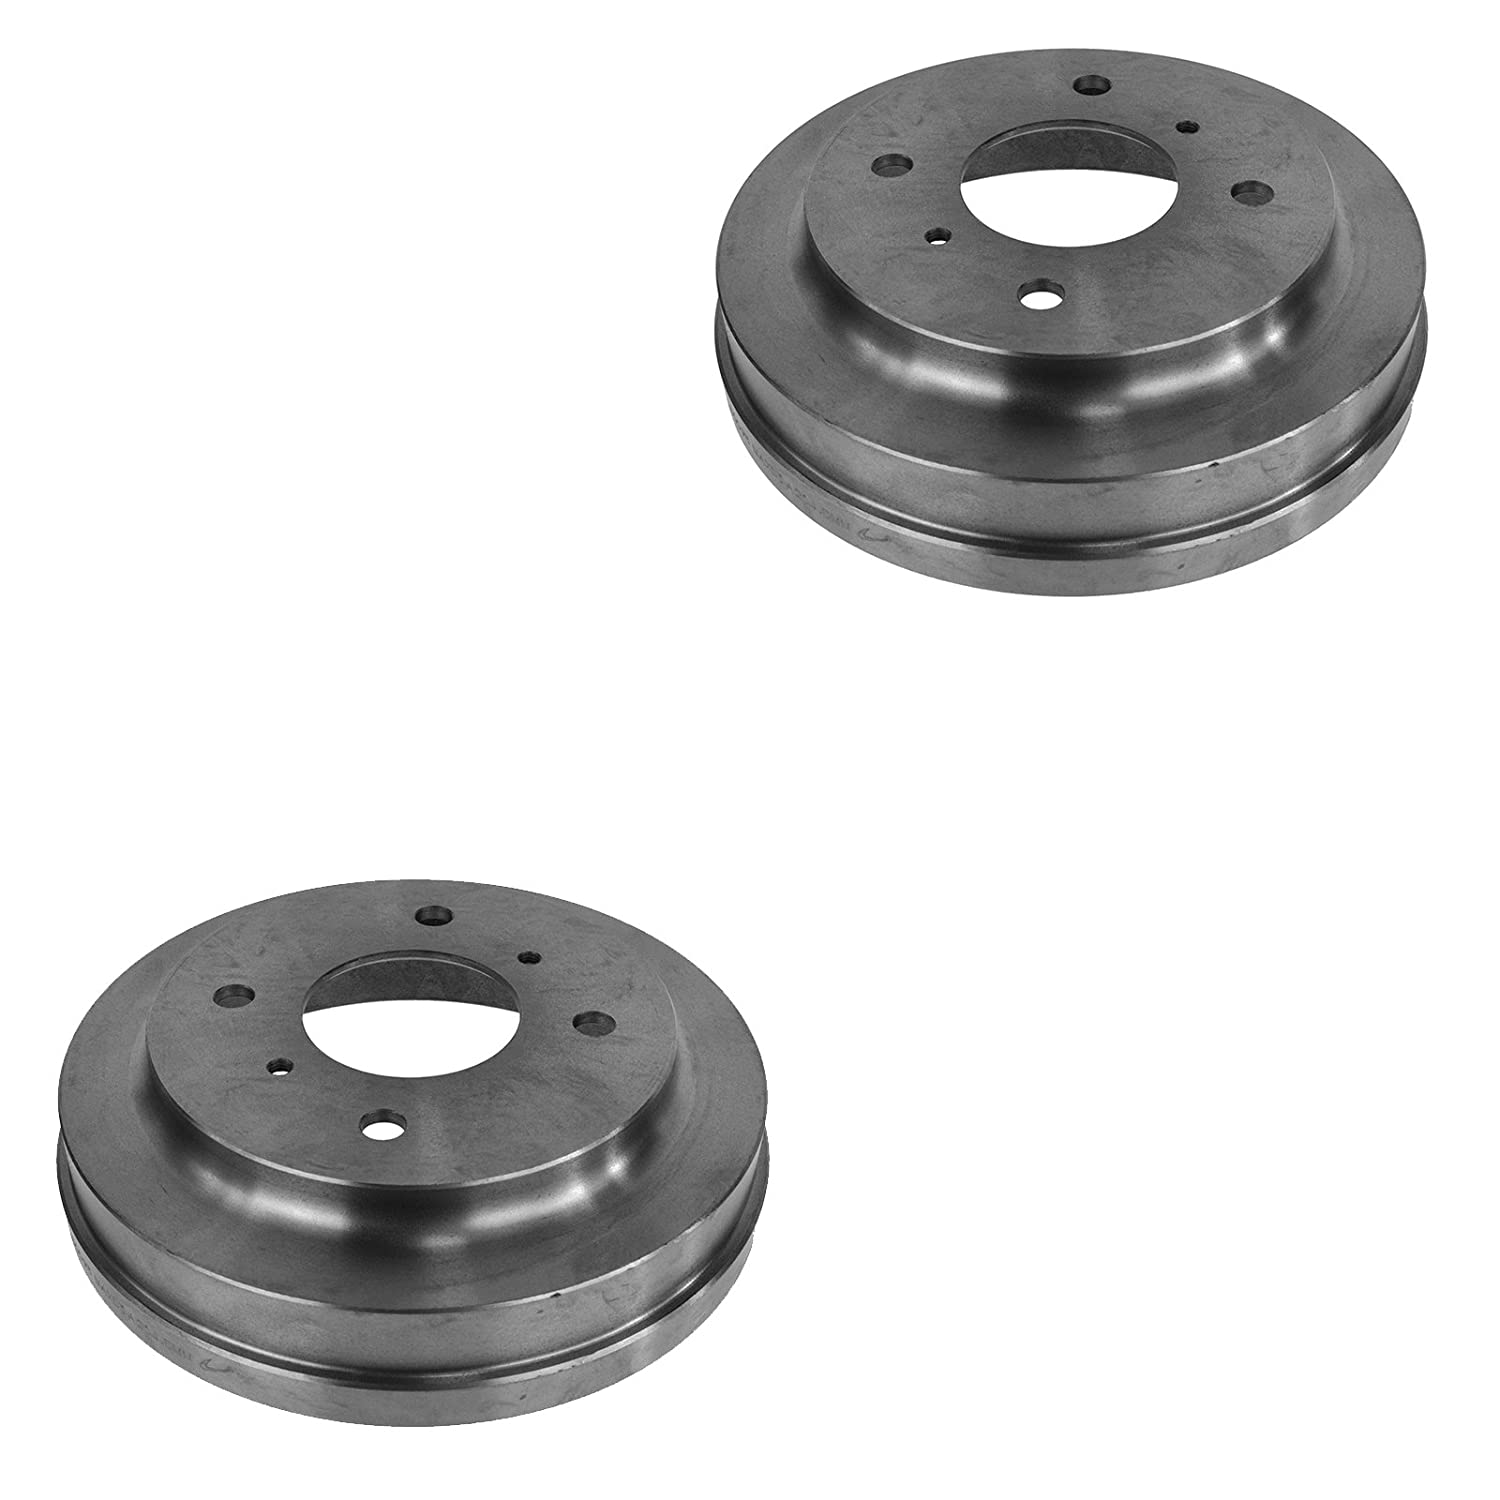 Brake Drums Shoes Rear Kit Set For Nissan Sentra Ford E150 Econoline 1999 Need The Drum Diagram Automotive